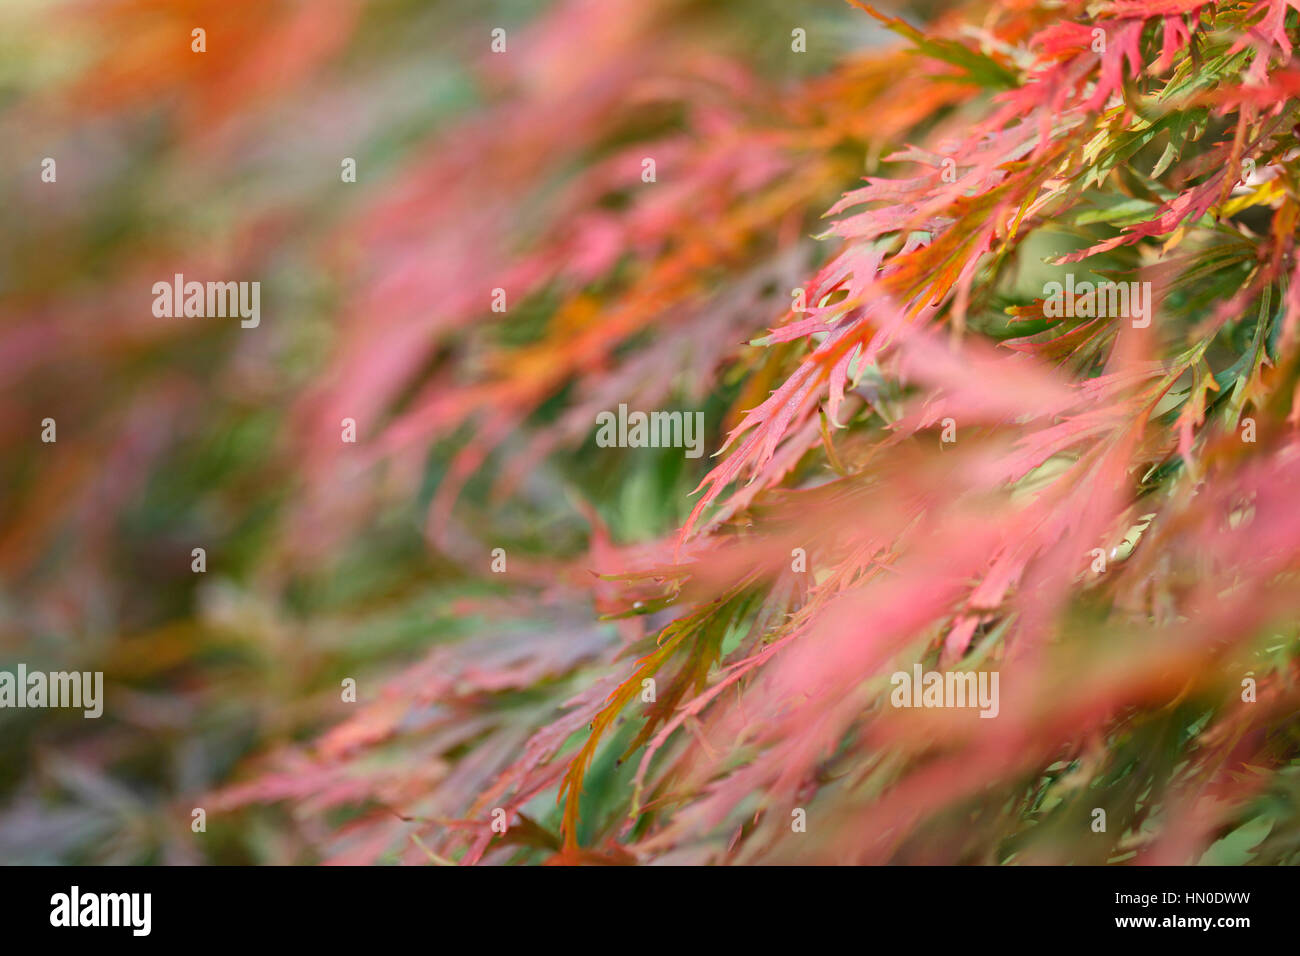 acer palmatum, cut-leaved japanese maple, autumn leaves changing colour, sunny day  Jane Ann Butler Photography Stock Photo